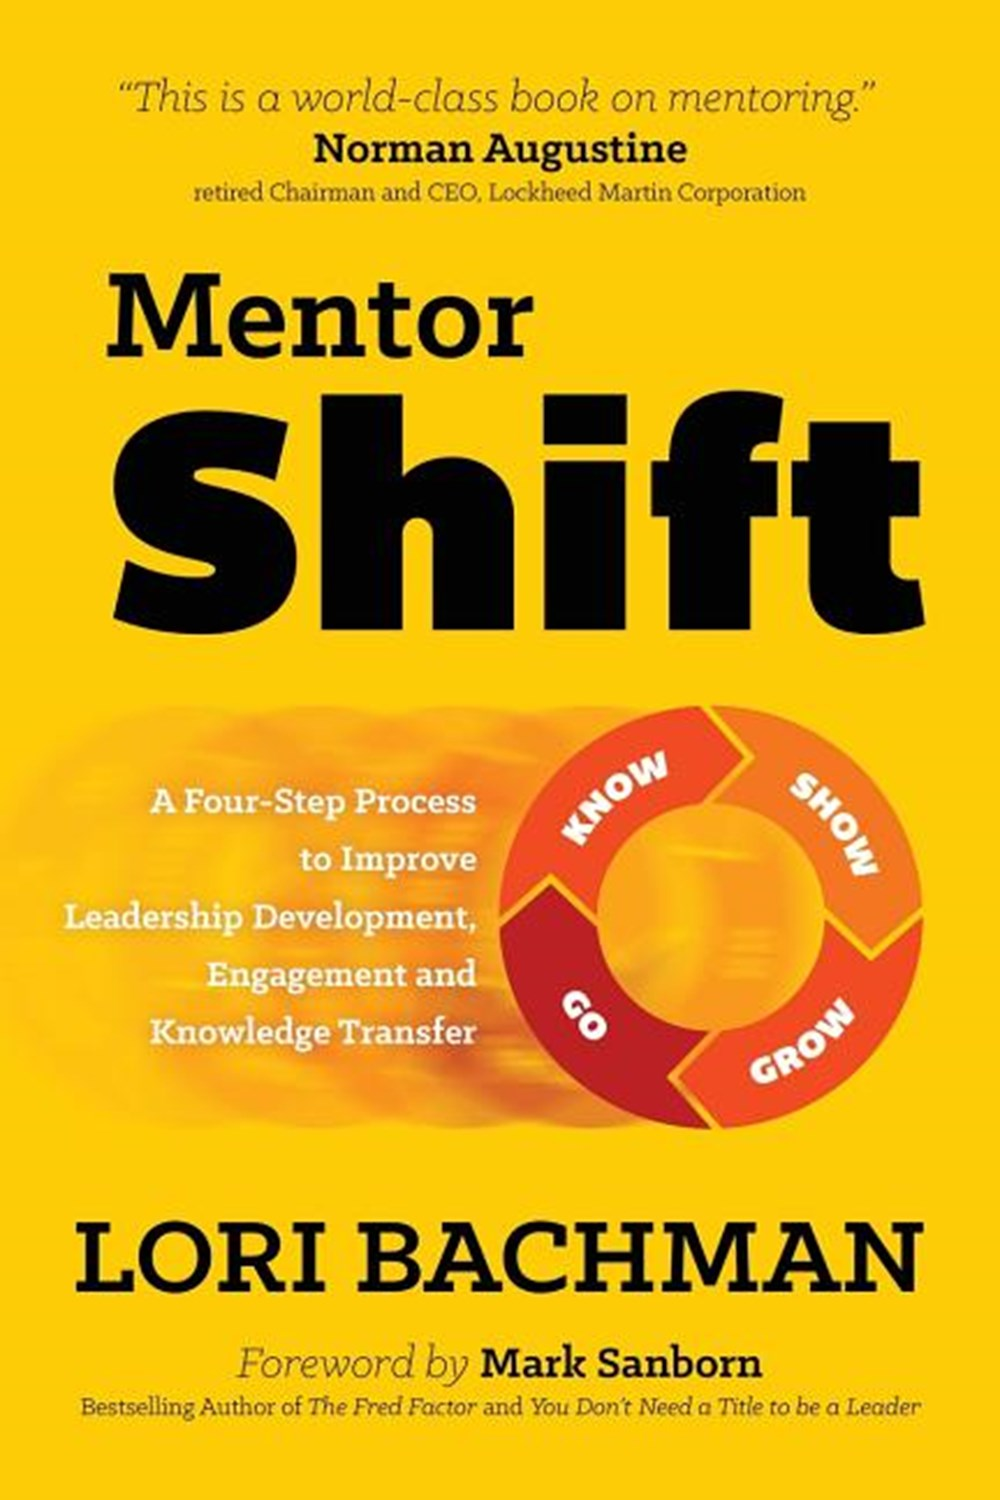 Mentorshift A Four-Step Process to Improve Leadership Development, Engagement and Knowledge Transfer